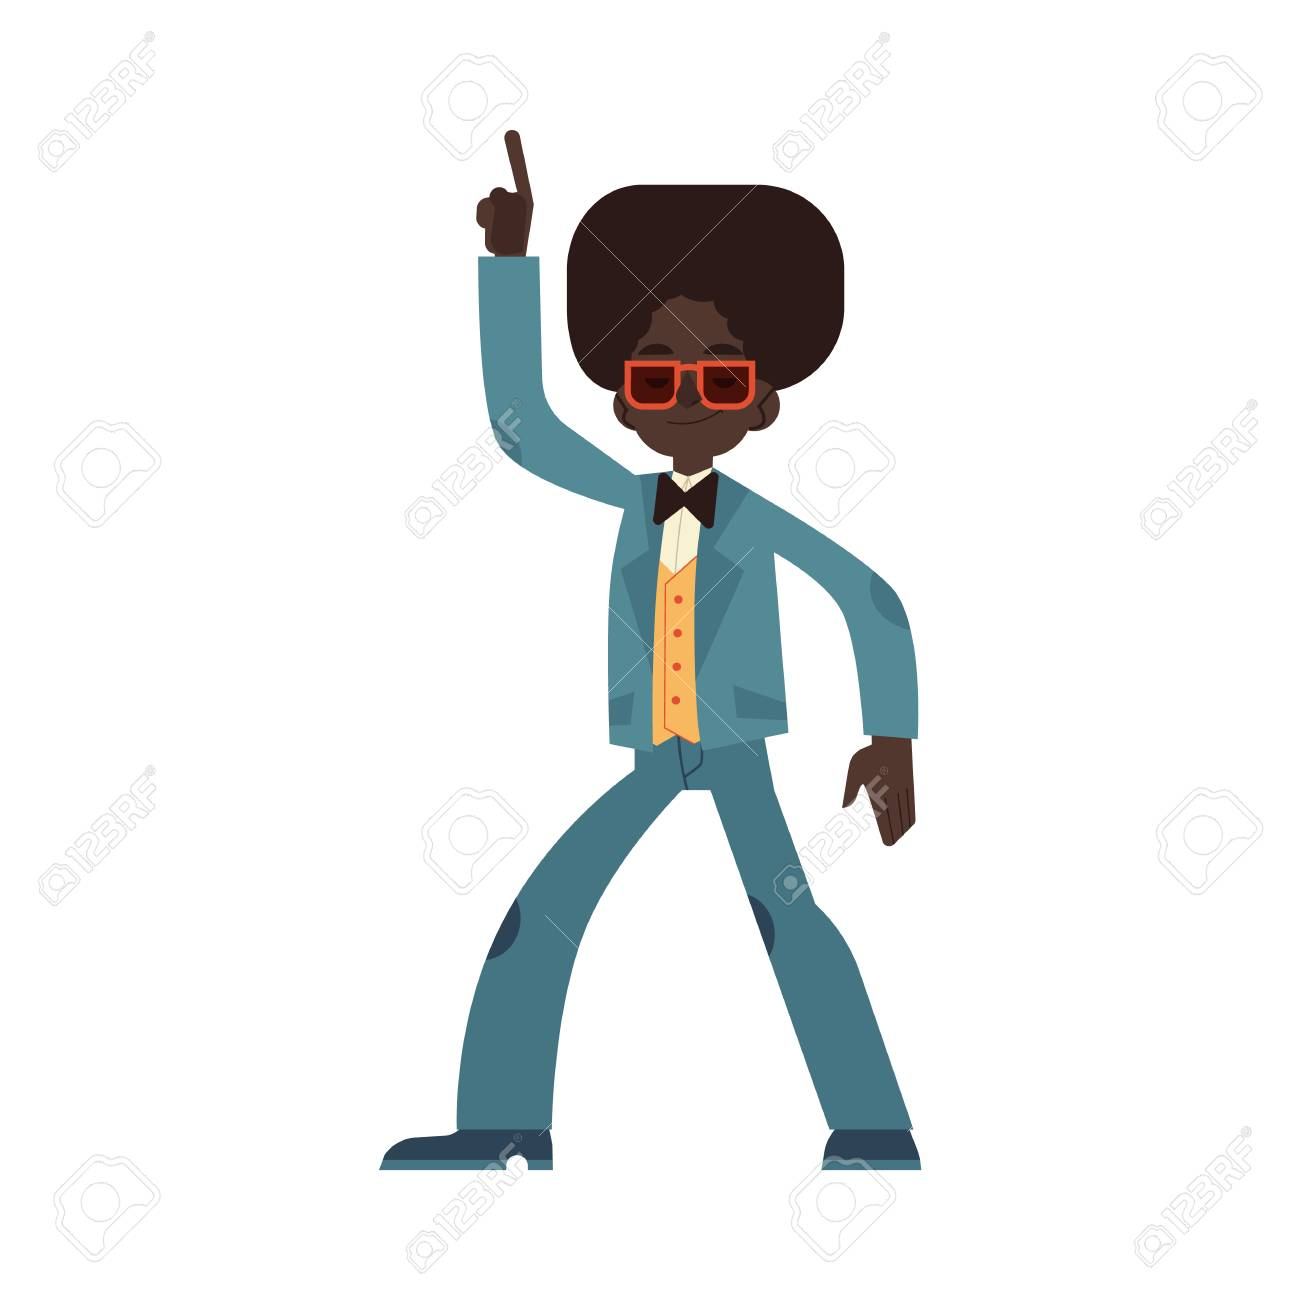 Vector illustration of african man dancing disco in flat cartoon style - male character wearing cloth and hair in 70s fashion style doing dance moves and having fun isolated on white background. - 126844679